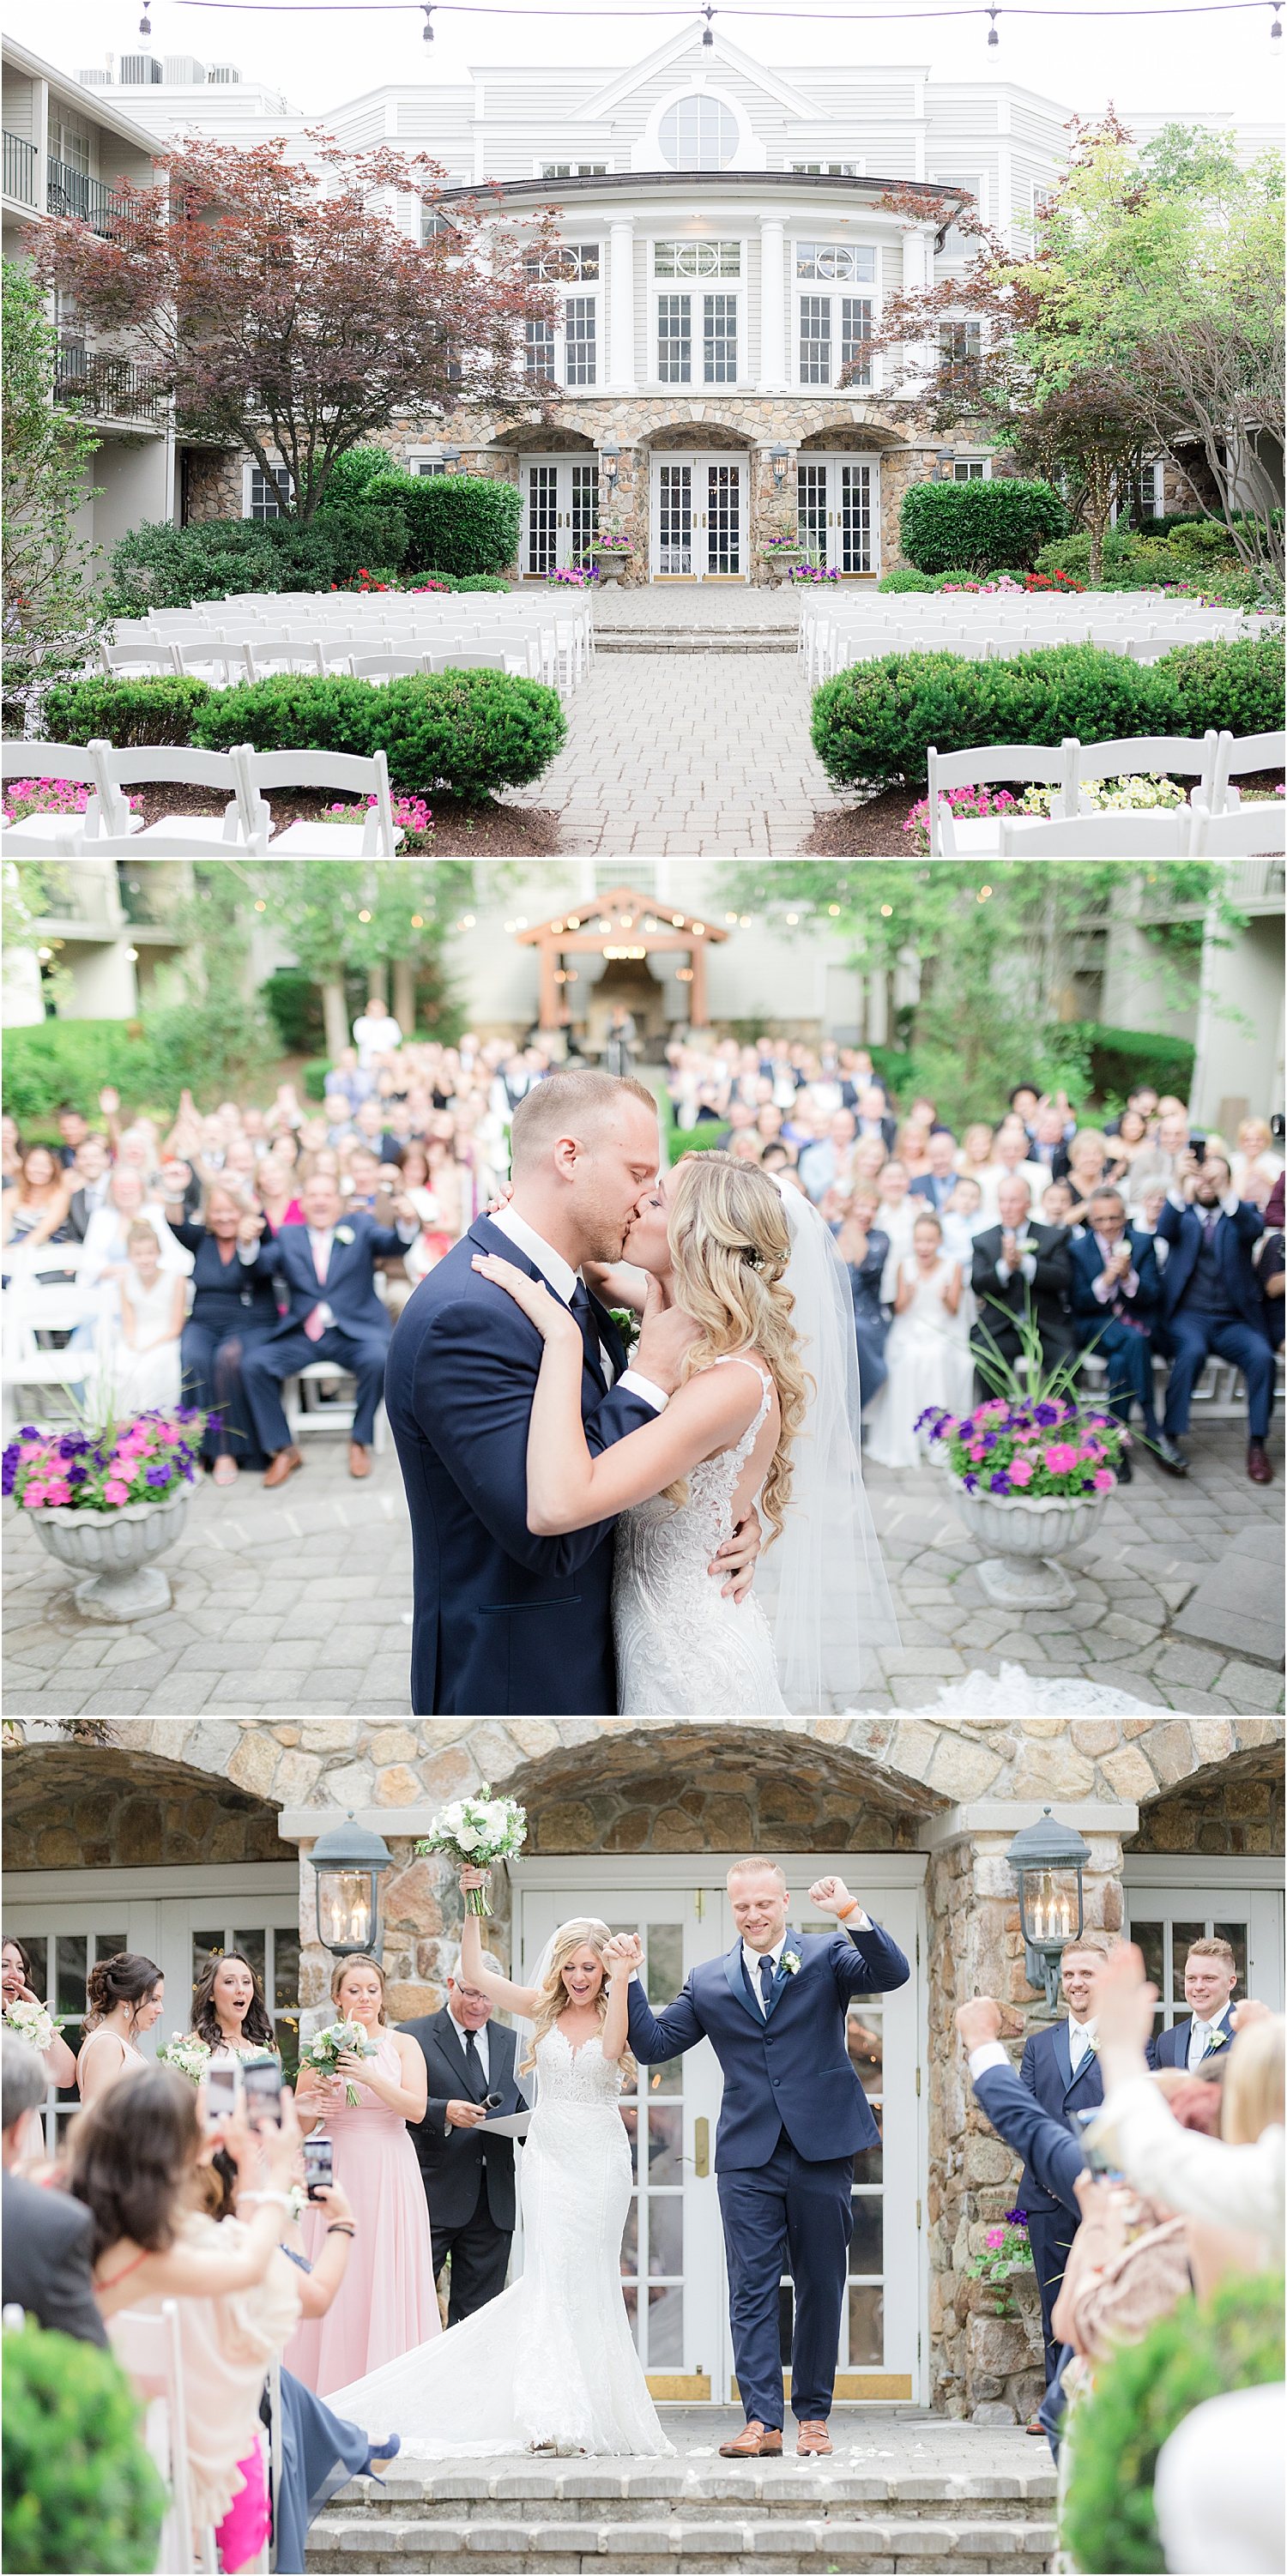 outdoor wedding ceremony photo at Olde Mill Inn in Basking Ridge